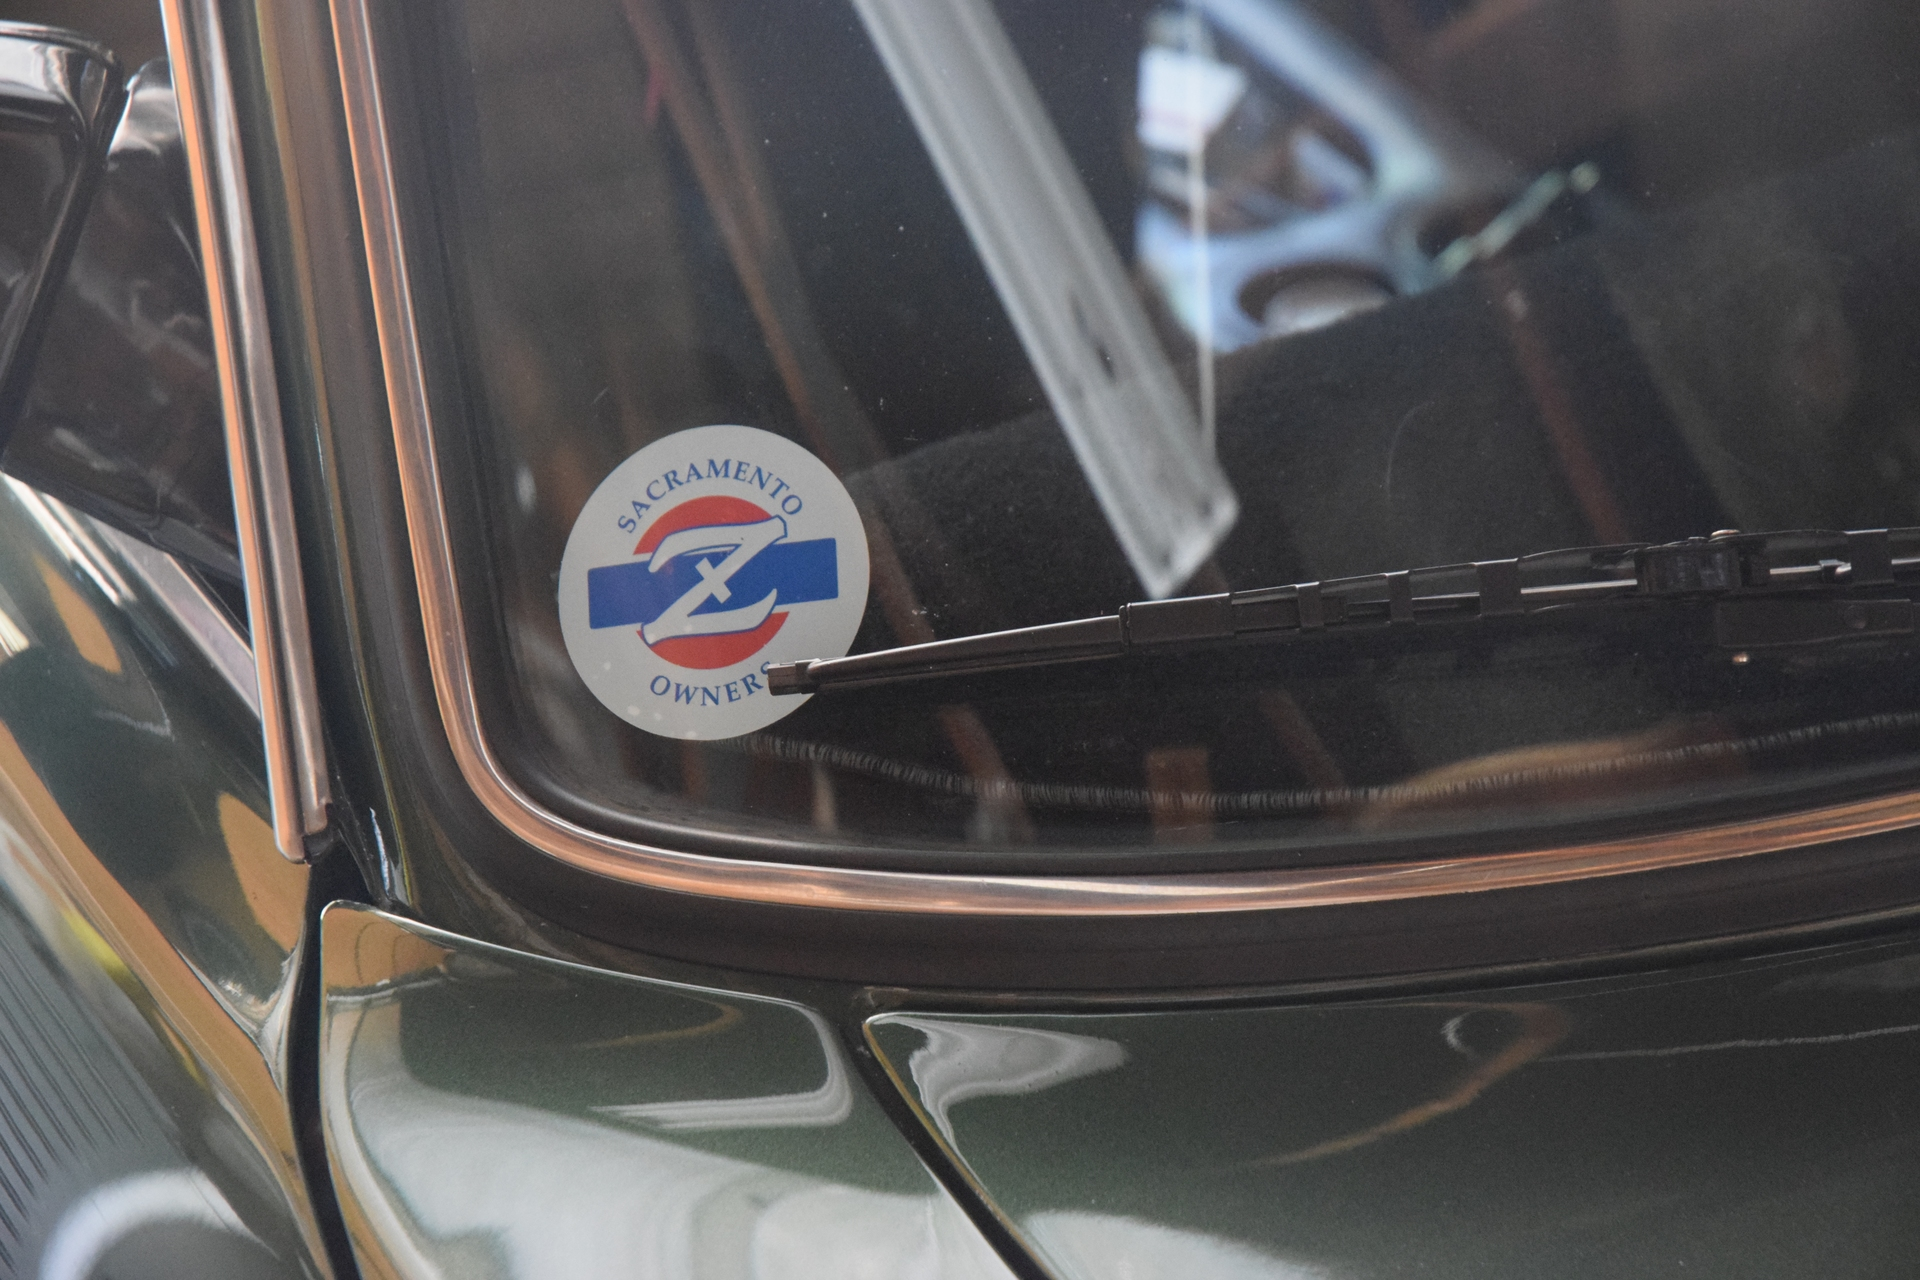 Nick's photograph of their Front Adhesive Stickers